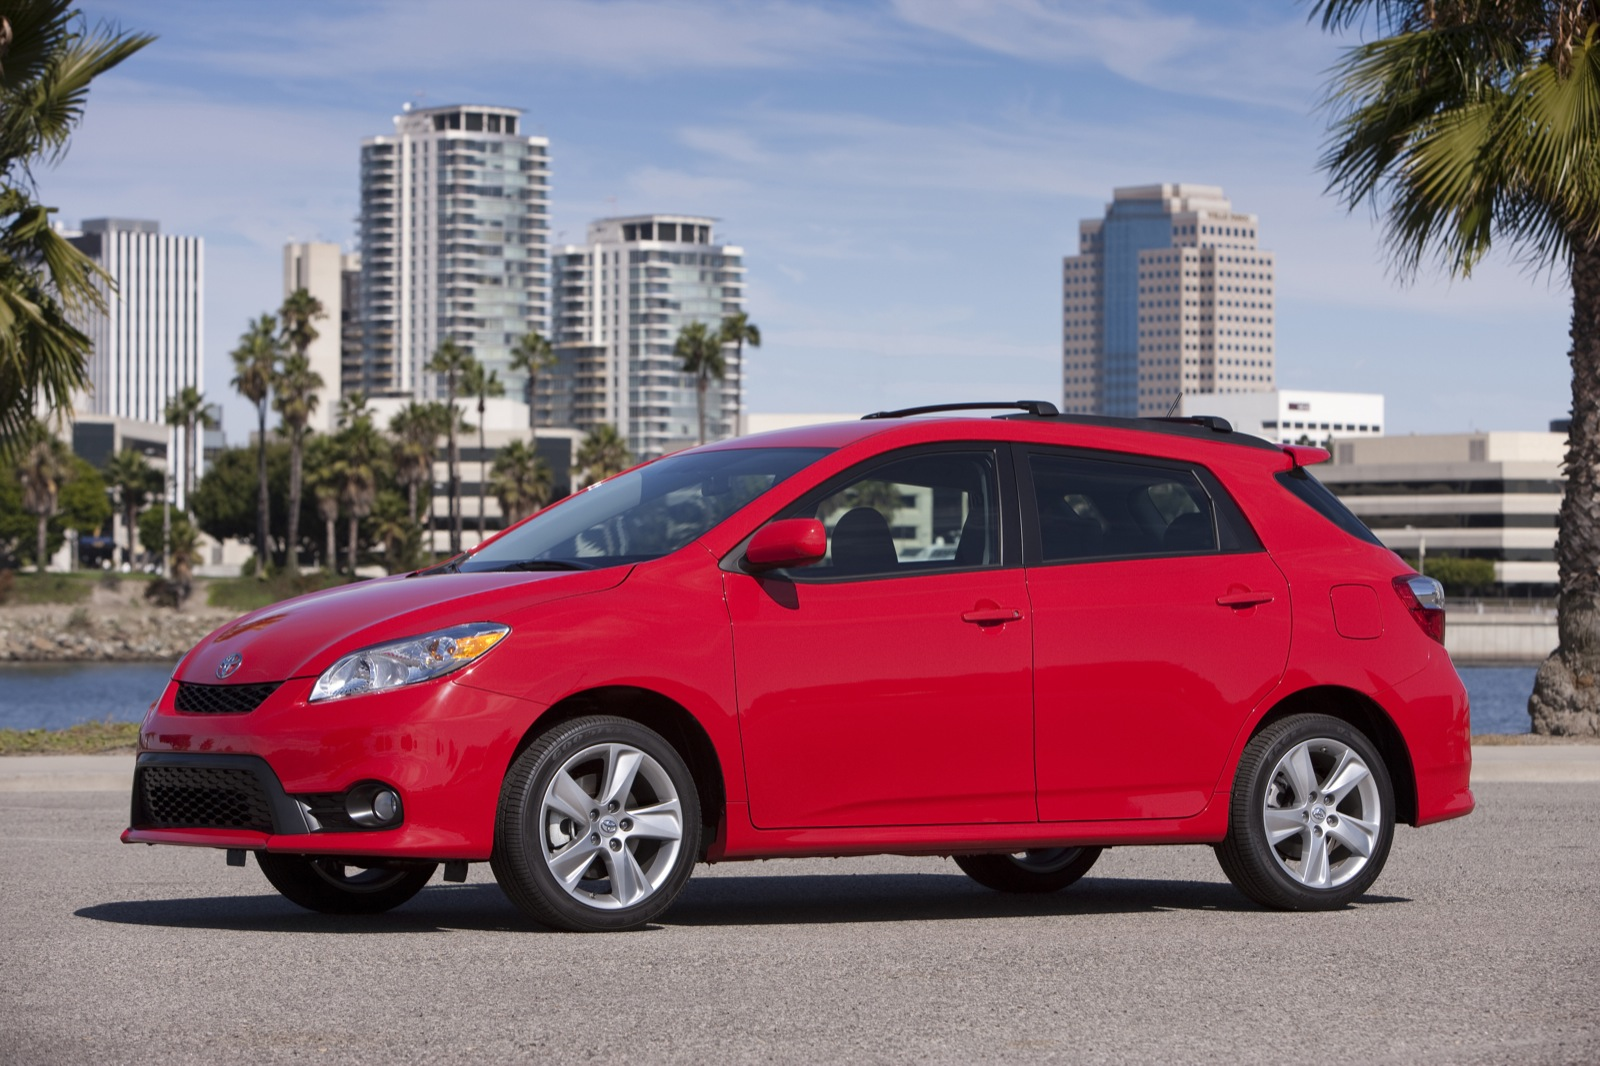 Cars For Sale In Colorado Springs >> 2013 Toyota Matrix Review, Ratings, Specs, Prices, and Photos - The Car Connection